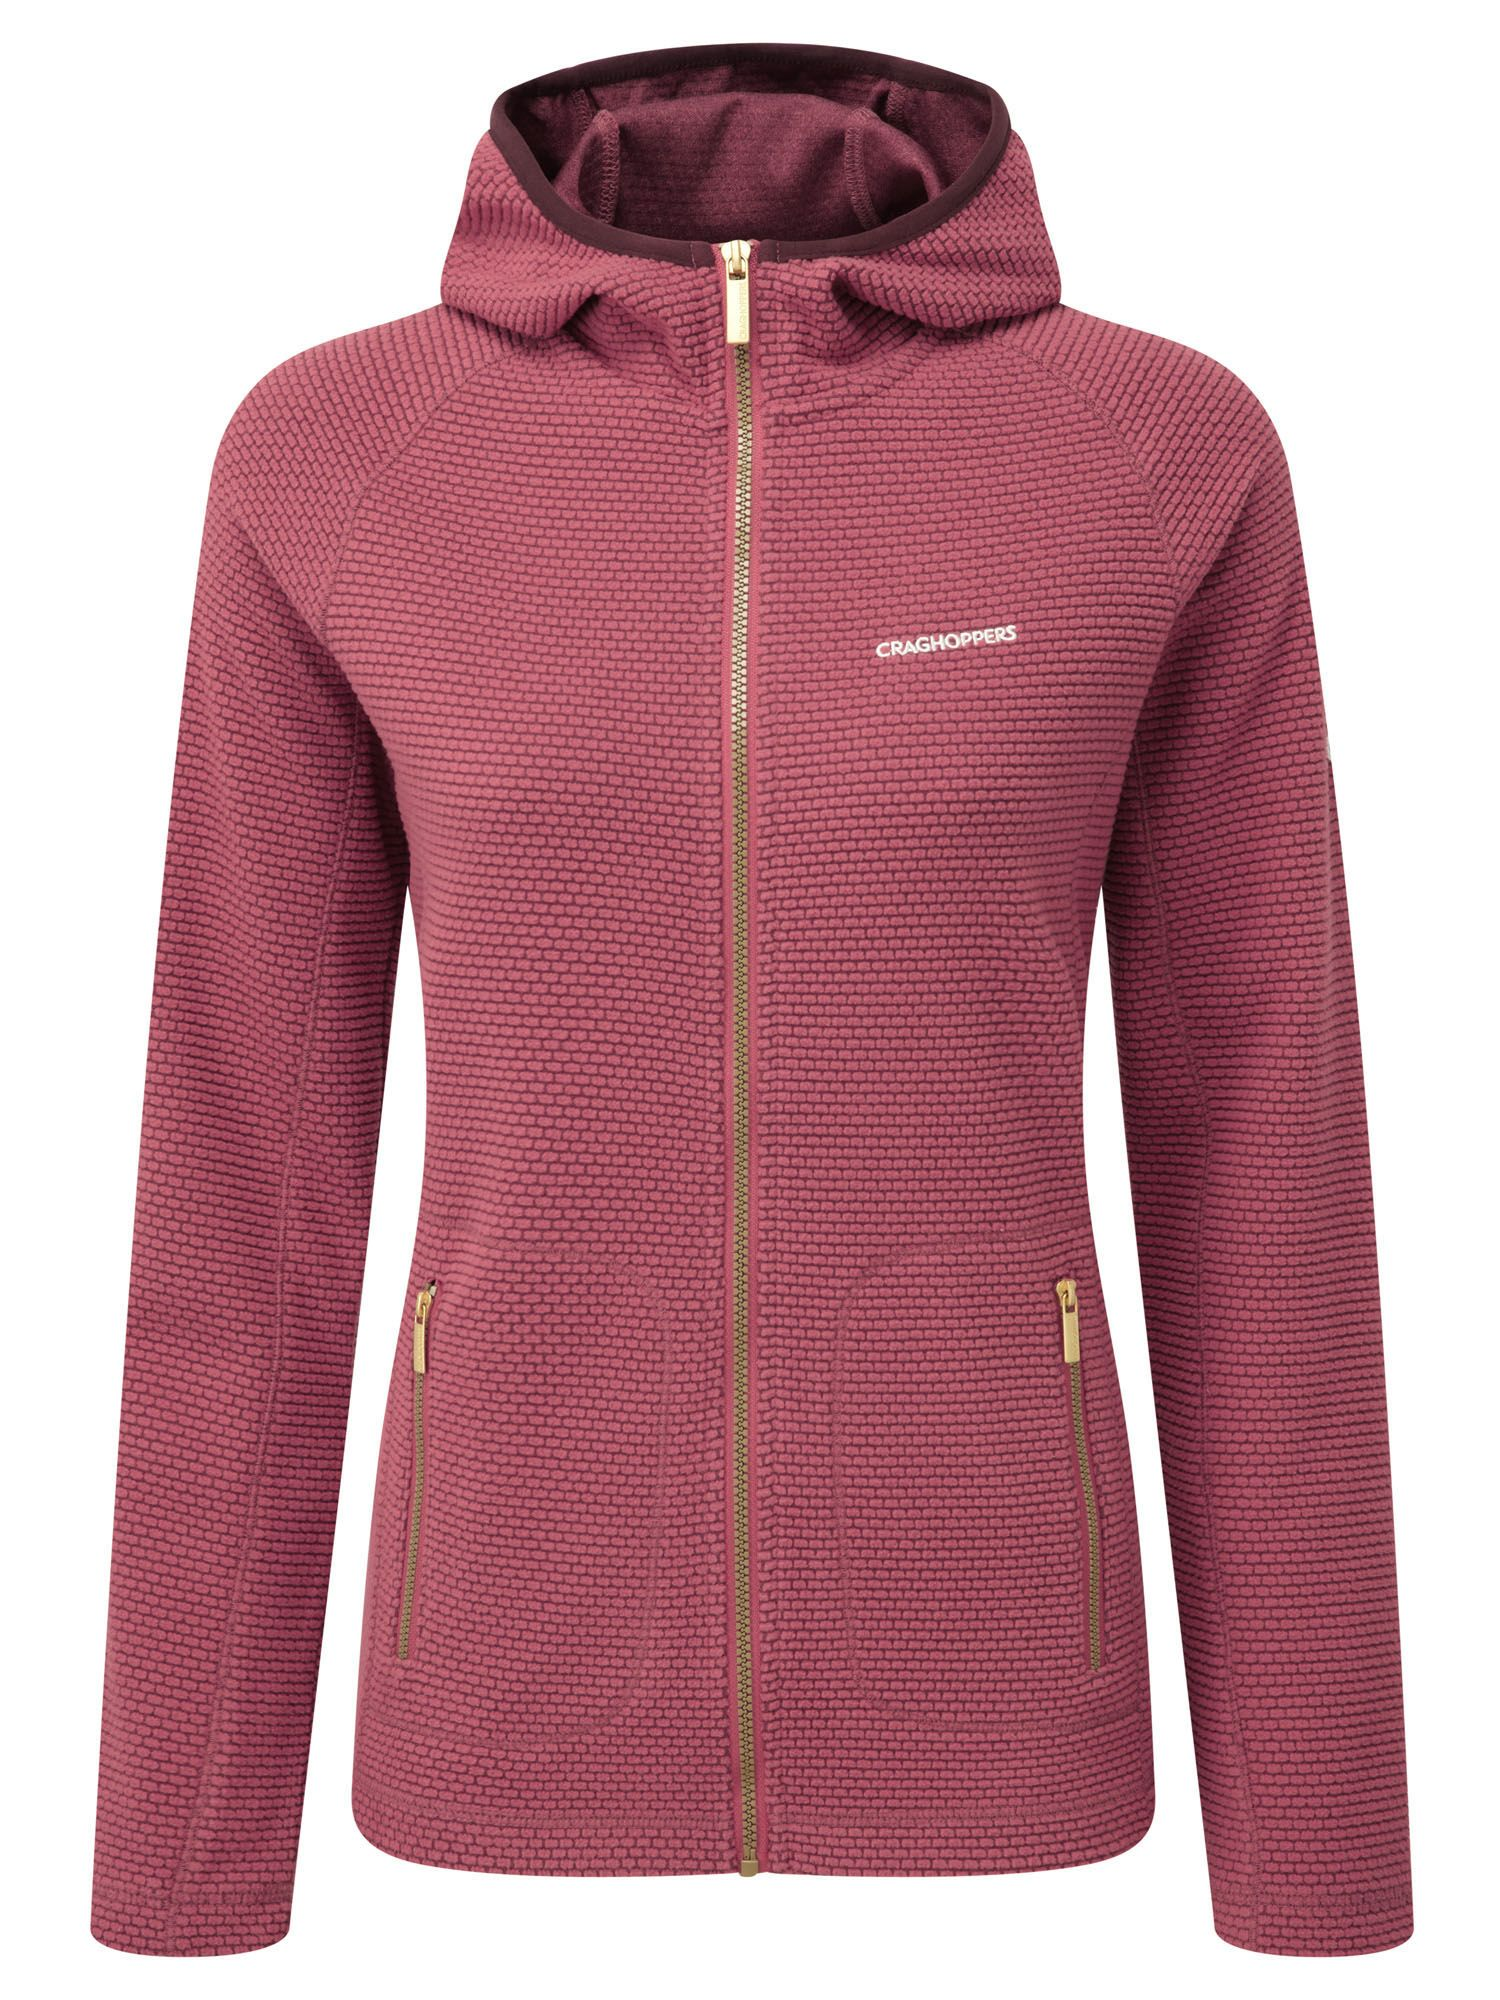 Craghoppers Hazelton Hooded Fleece Jacket, Pink